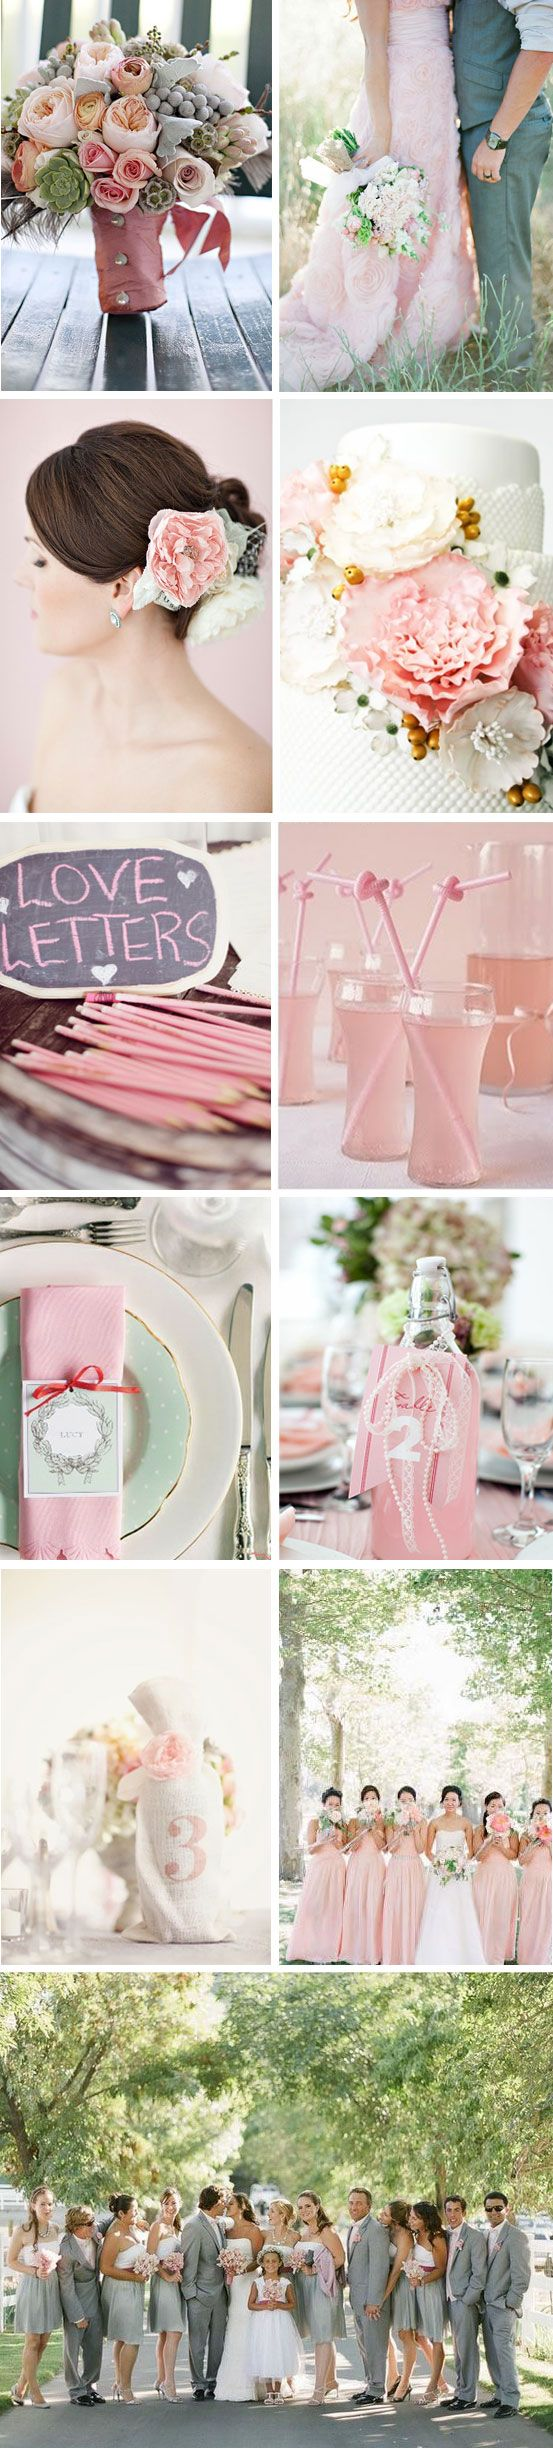 pink!Wedding Inspiration, Lights Pink And White Wedding, Pastel Pink, Pale Pink, Pink And Green Wedding Cake, Lights Grey And Pink Wedding, Romantic Weddings, Lights Pink Green Grey Wedding, Pink Grey